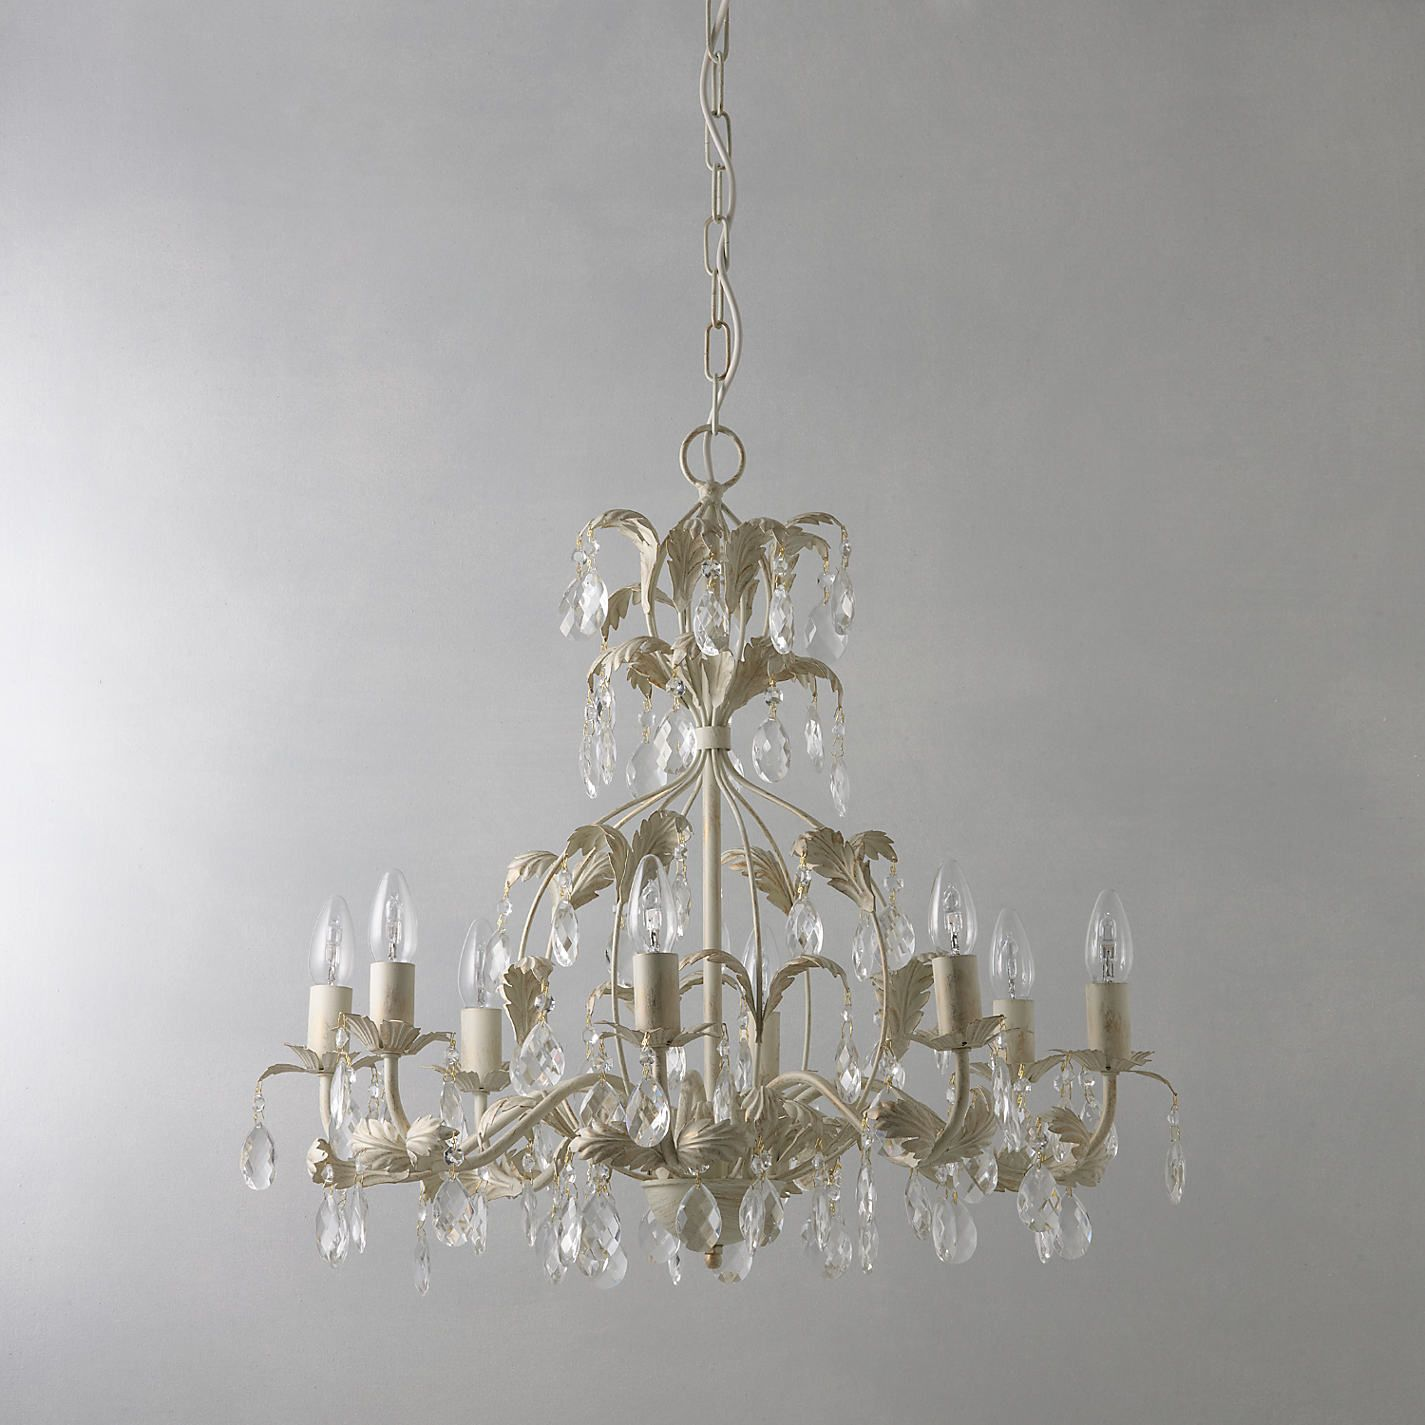 Mesmerizing john lewis chandelier contemporary best inspiration http www johnlewis com john lewis annabella chandelier 5 arm arubaitofo Choice Image